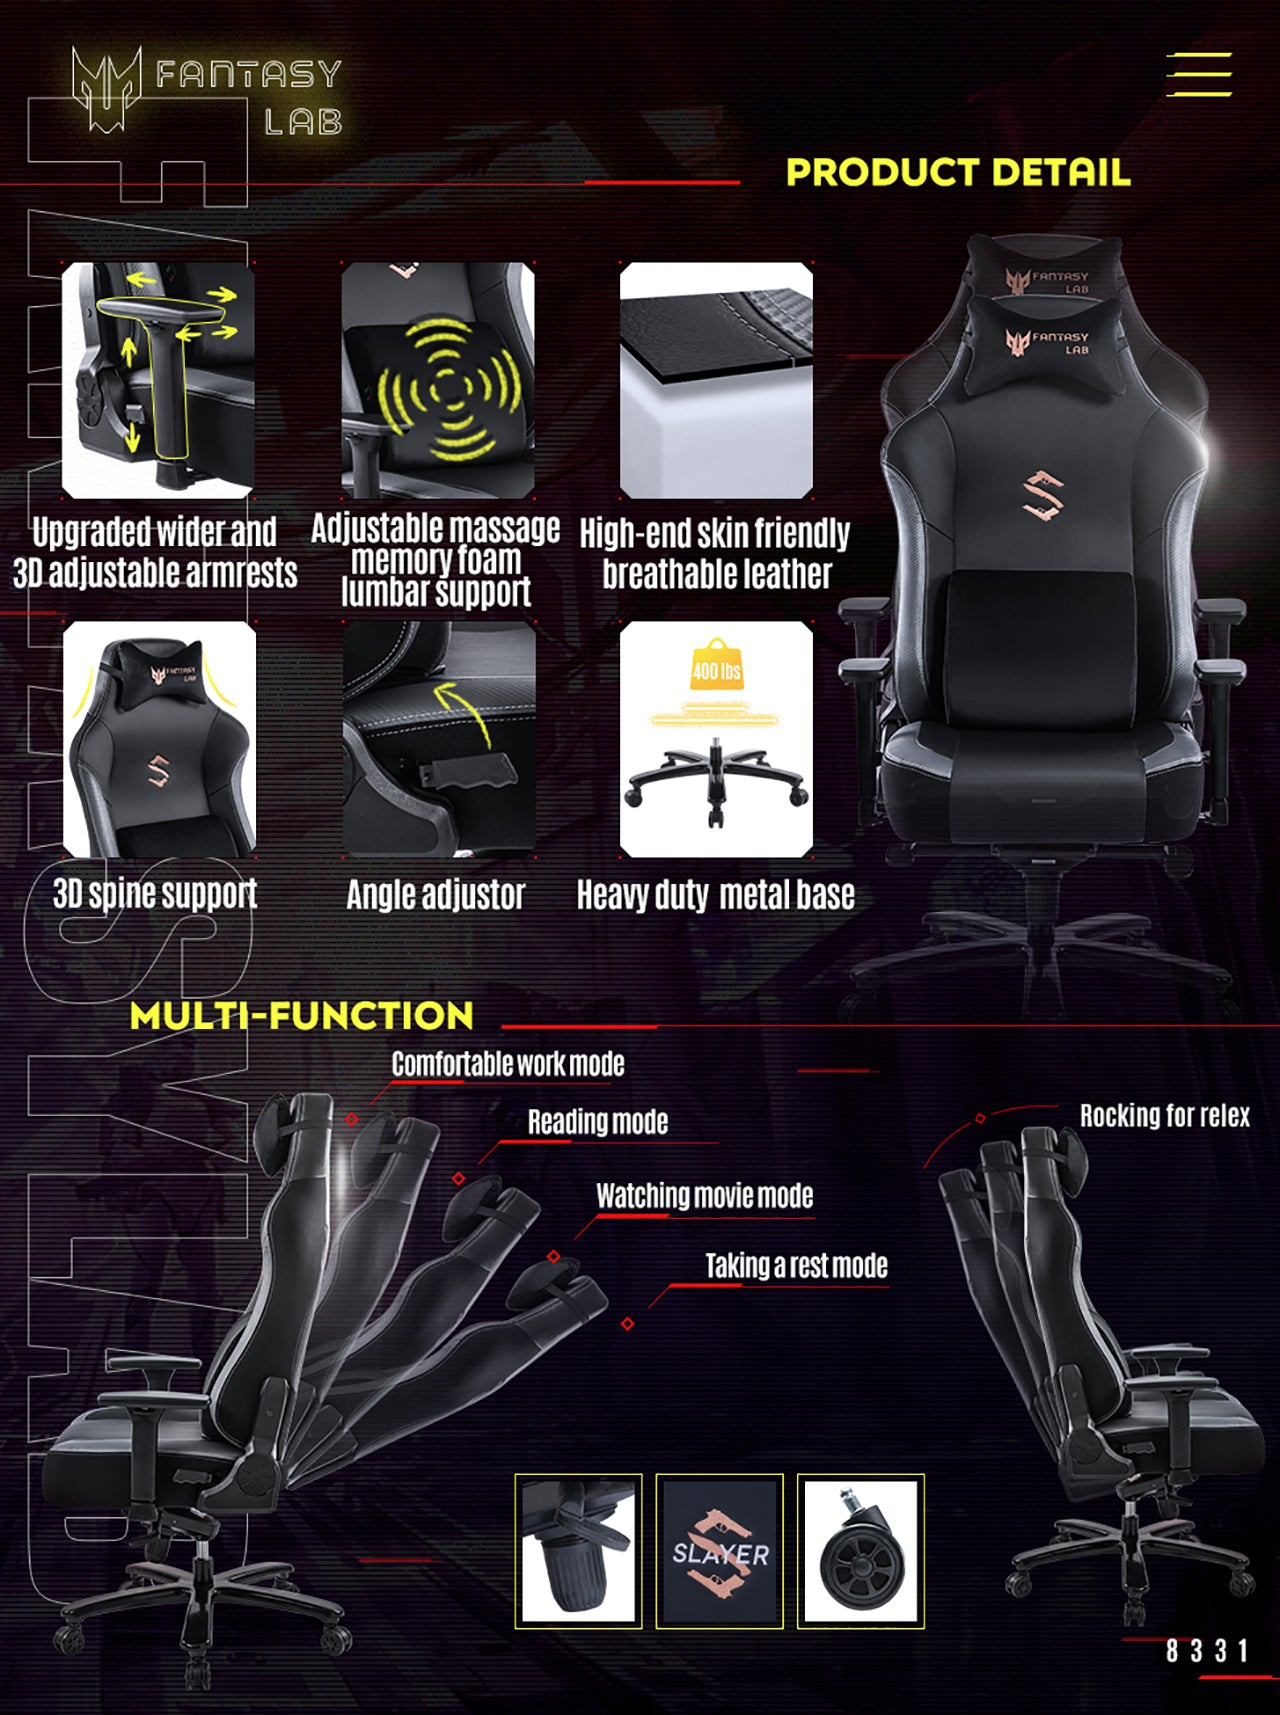 FANTASYLAB GRAY GAMING CHAIR WITH MASSAGE LUMBAR SUPPORT 8331 SERIES MULTIFUNCTIONAL COMPUTER GAMING CHAIR